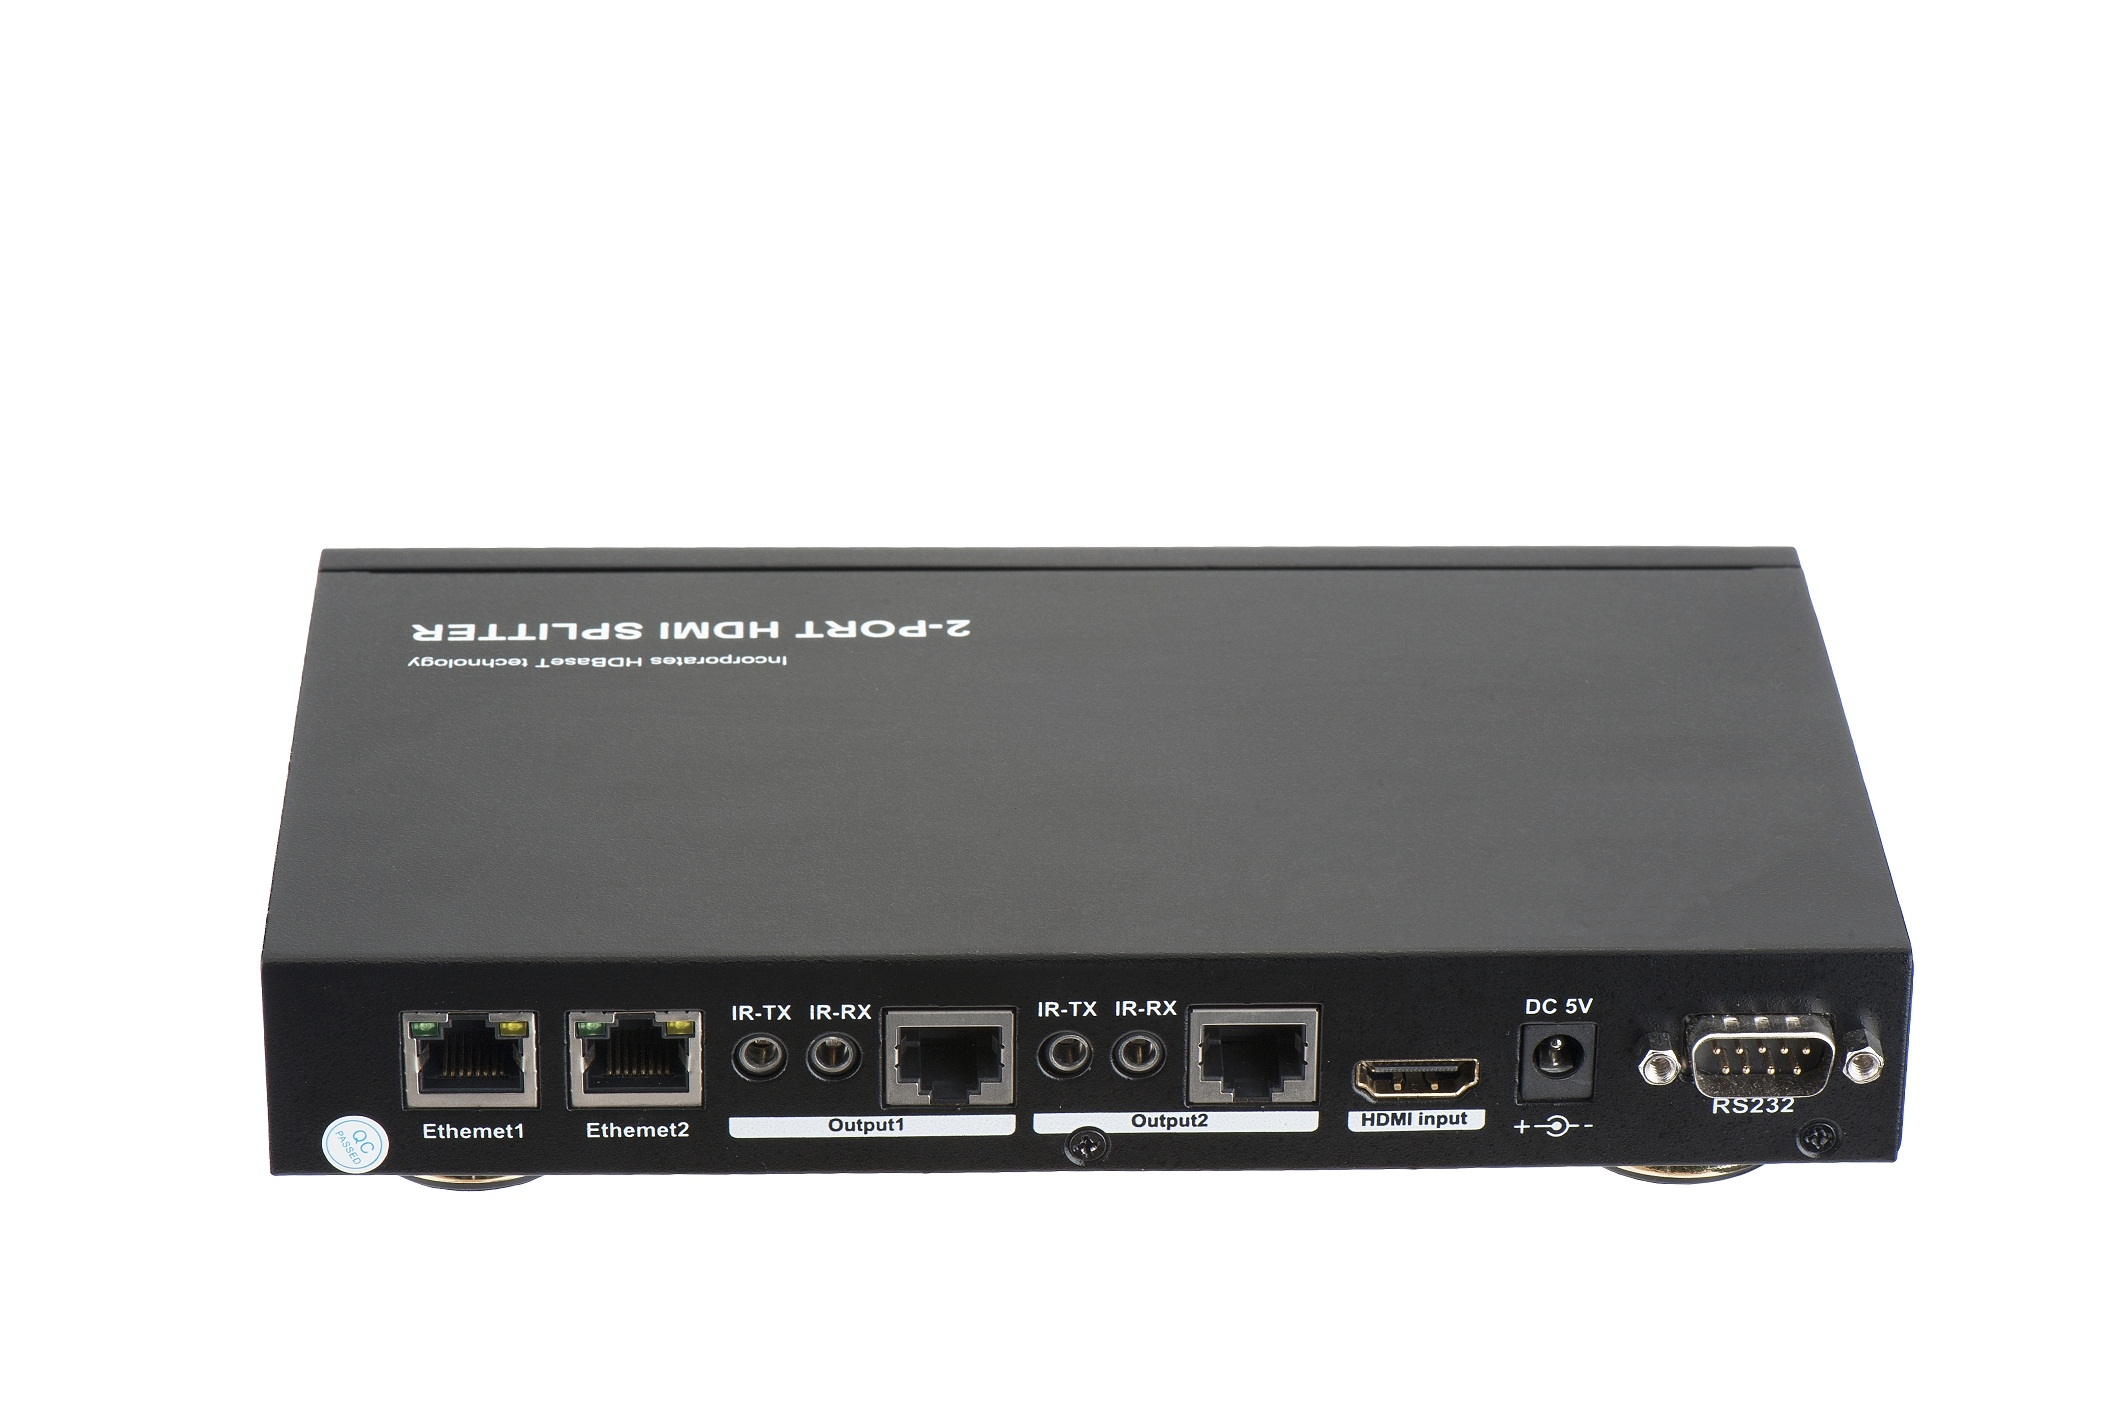 100m 1x2 Hdbaset Splitter Ethernet Rs232 Bi Direction